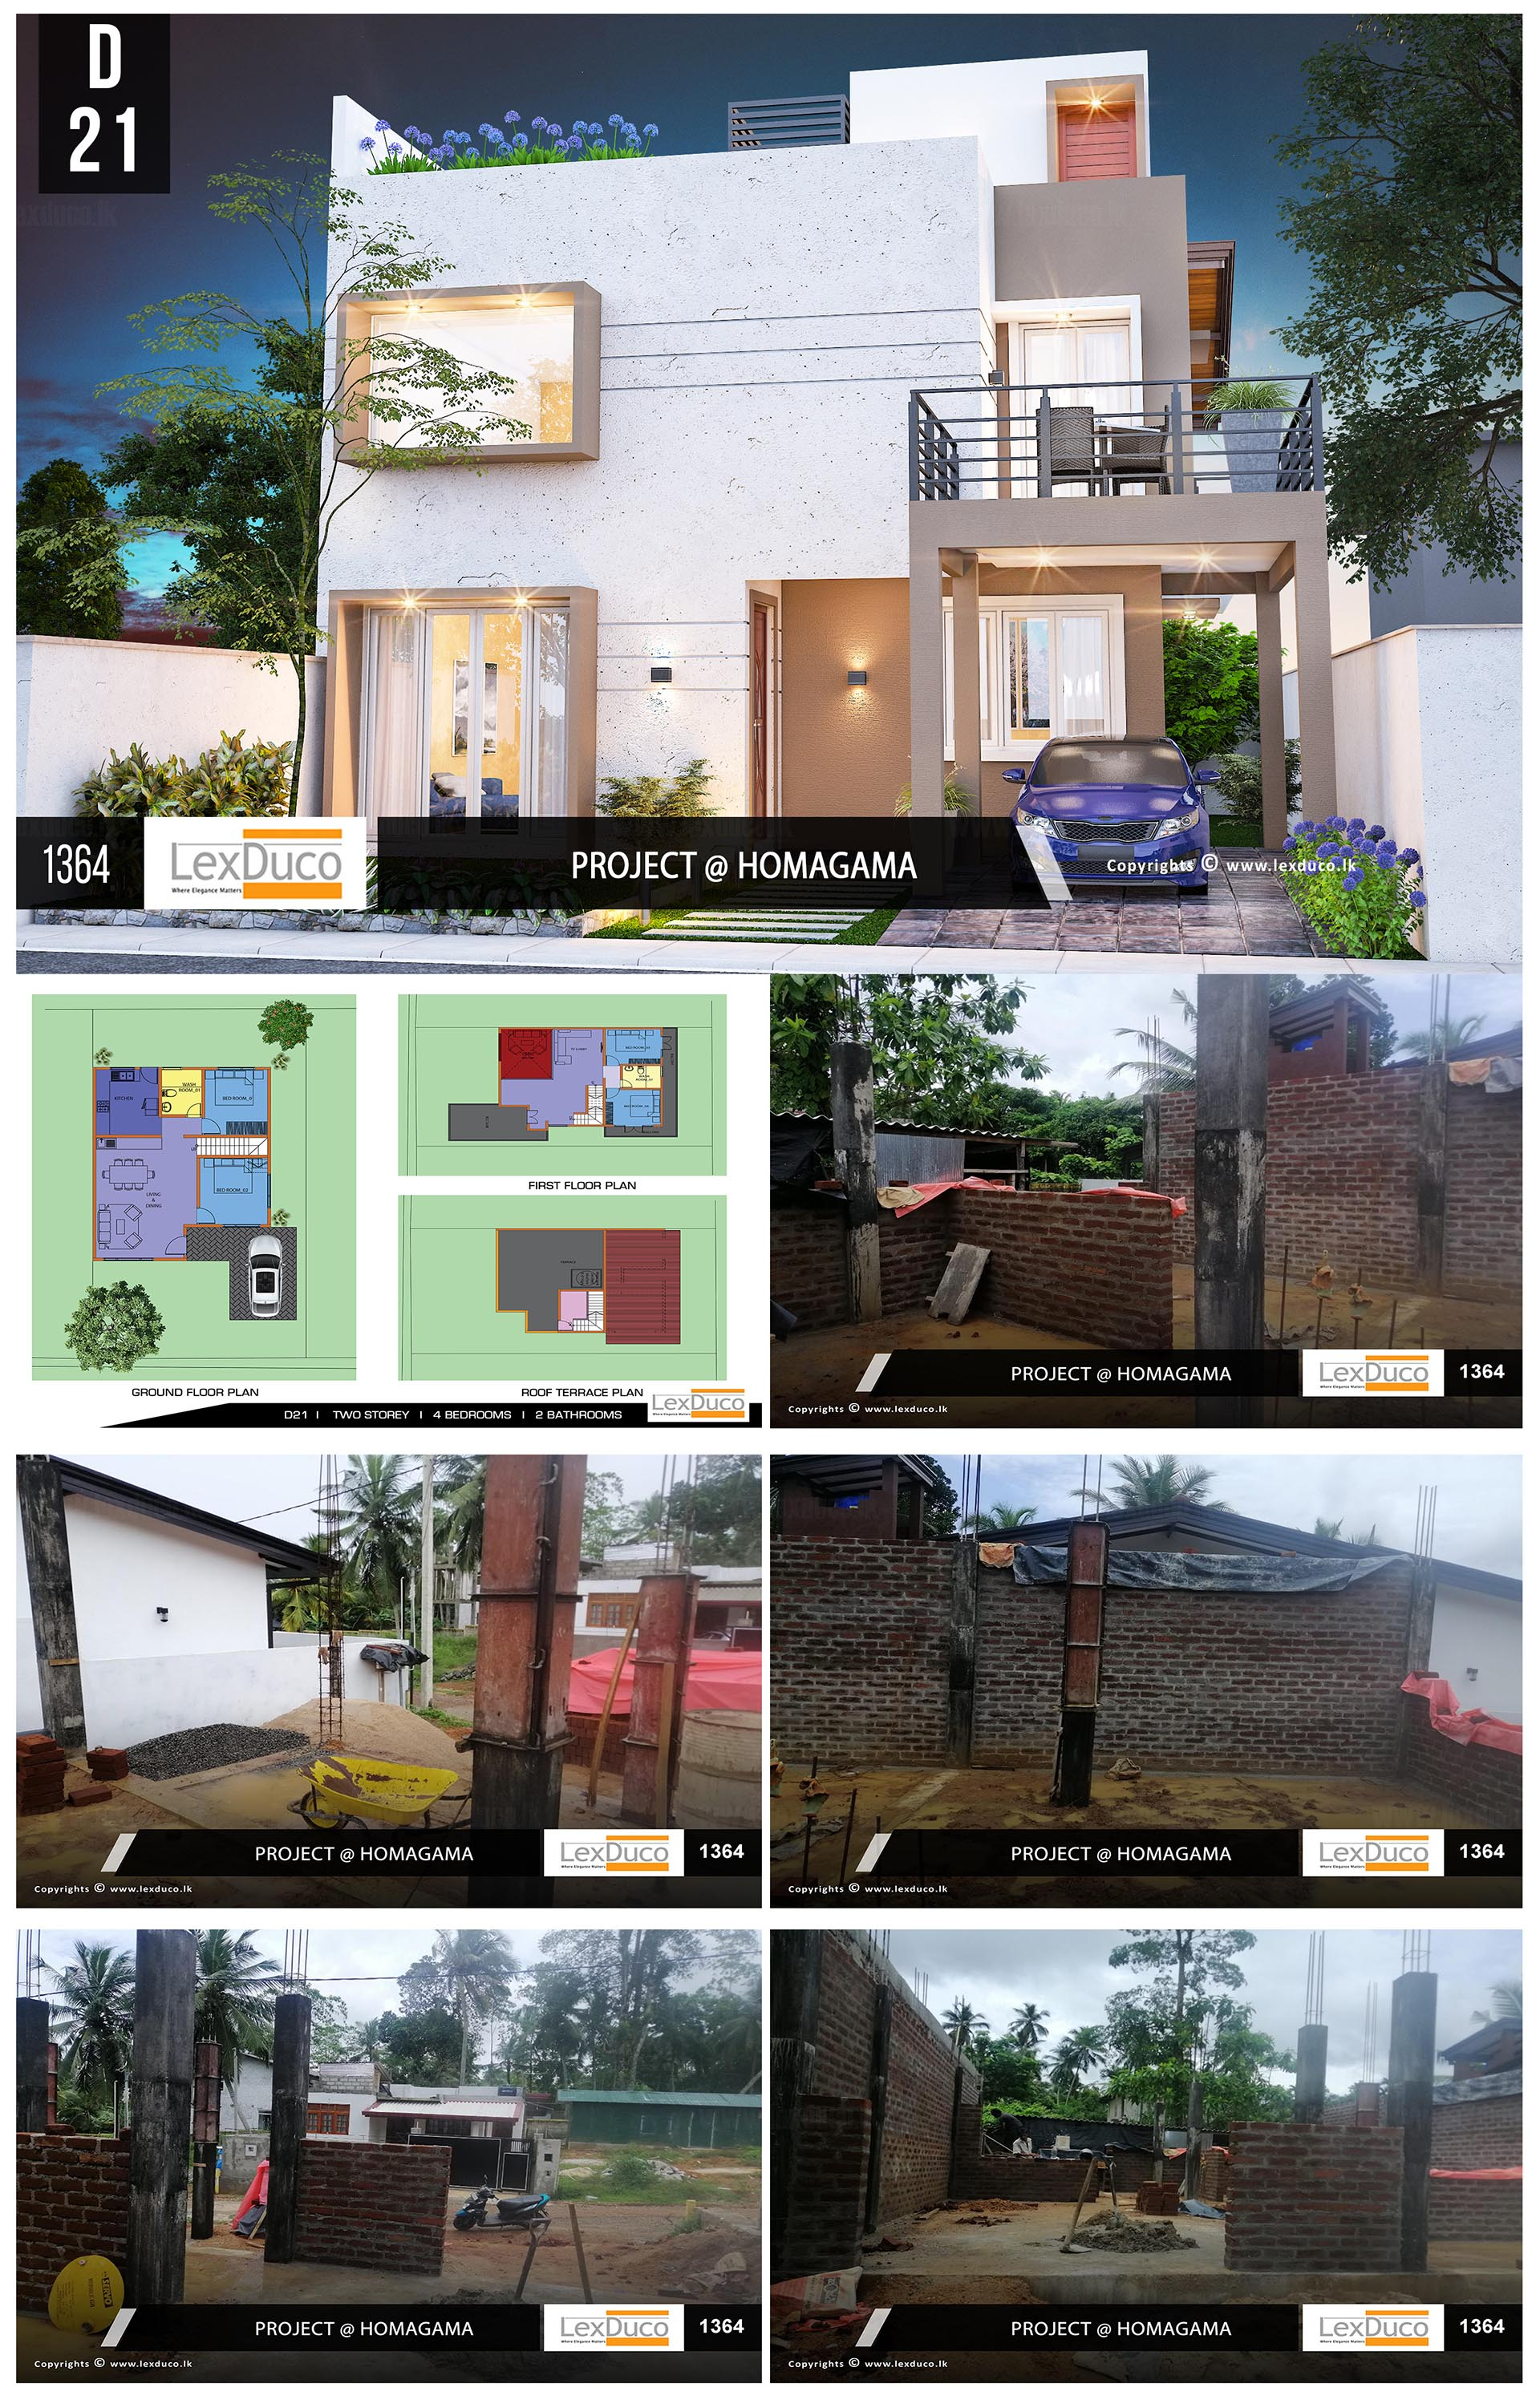 Residential Housing Project at Homagama | Lex Duco